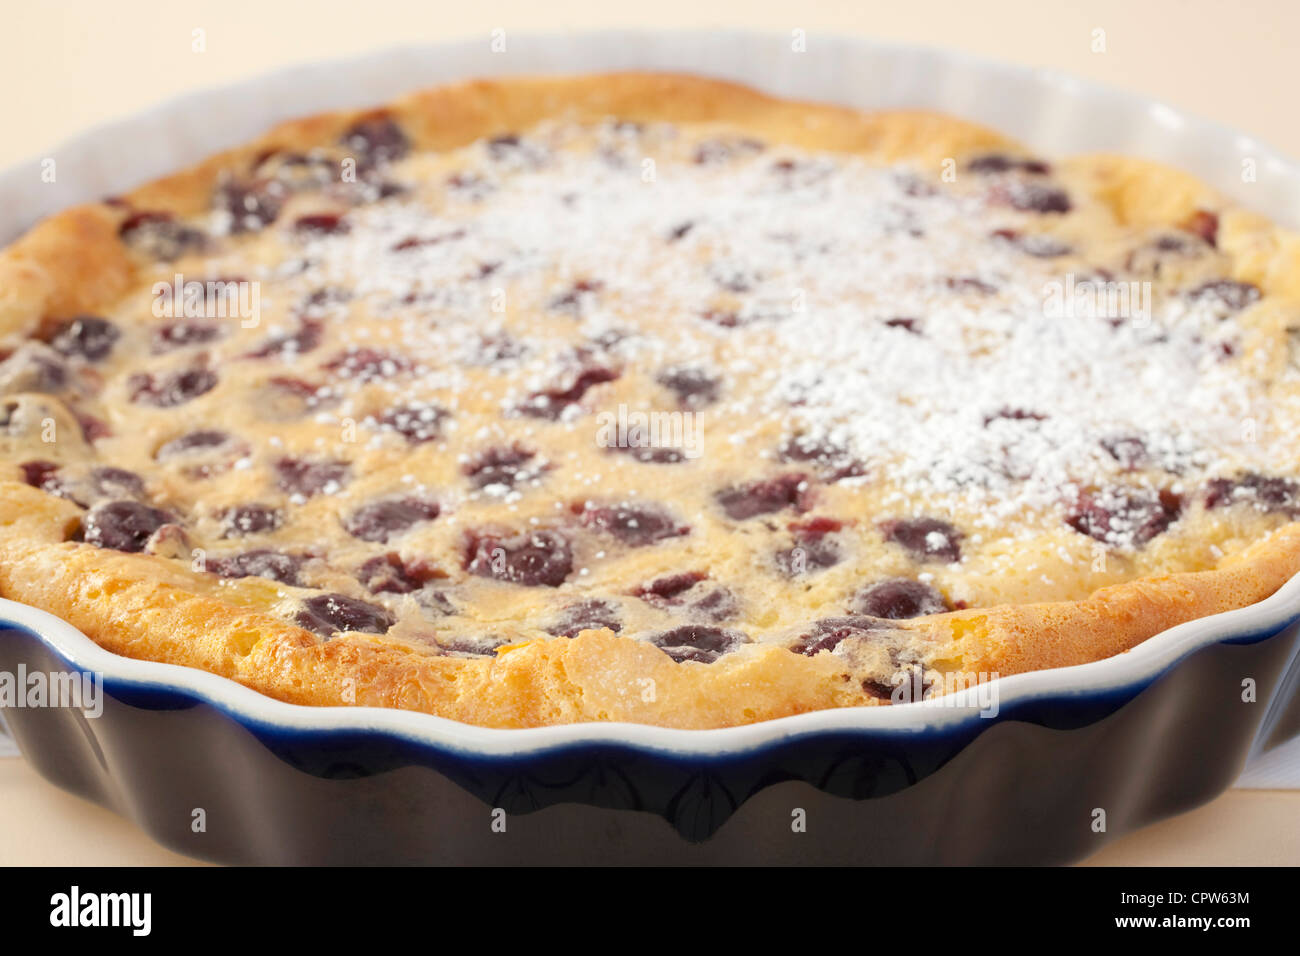 Famous French dessert, cherry clafoutis, with asprinkle of icing sugar. Absolutely delicious! Shallow DOF, focus - Stock Image